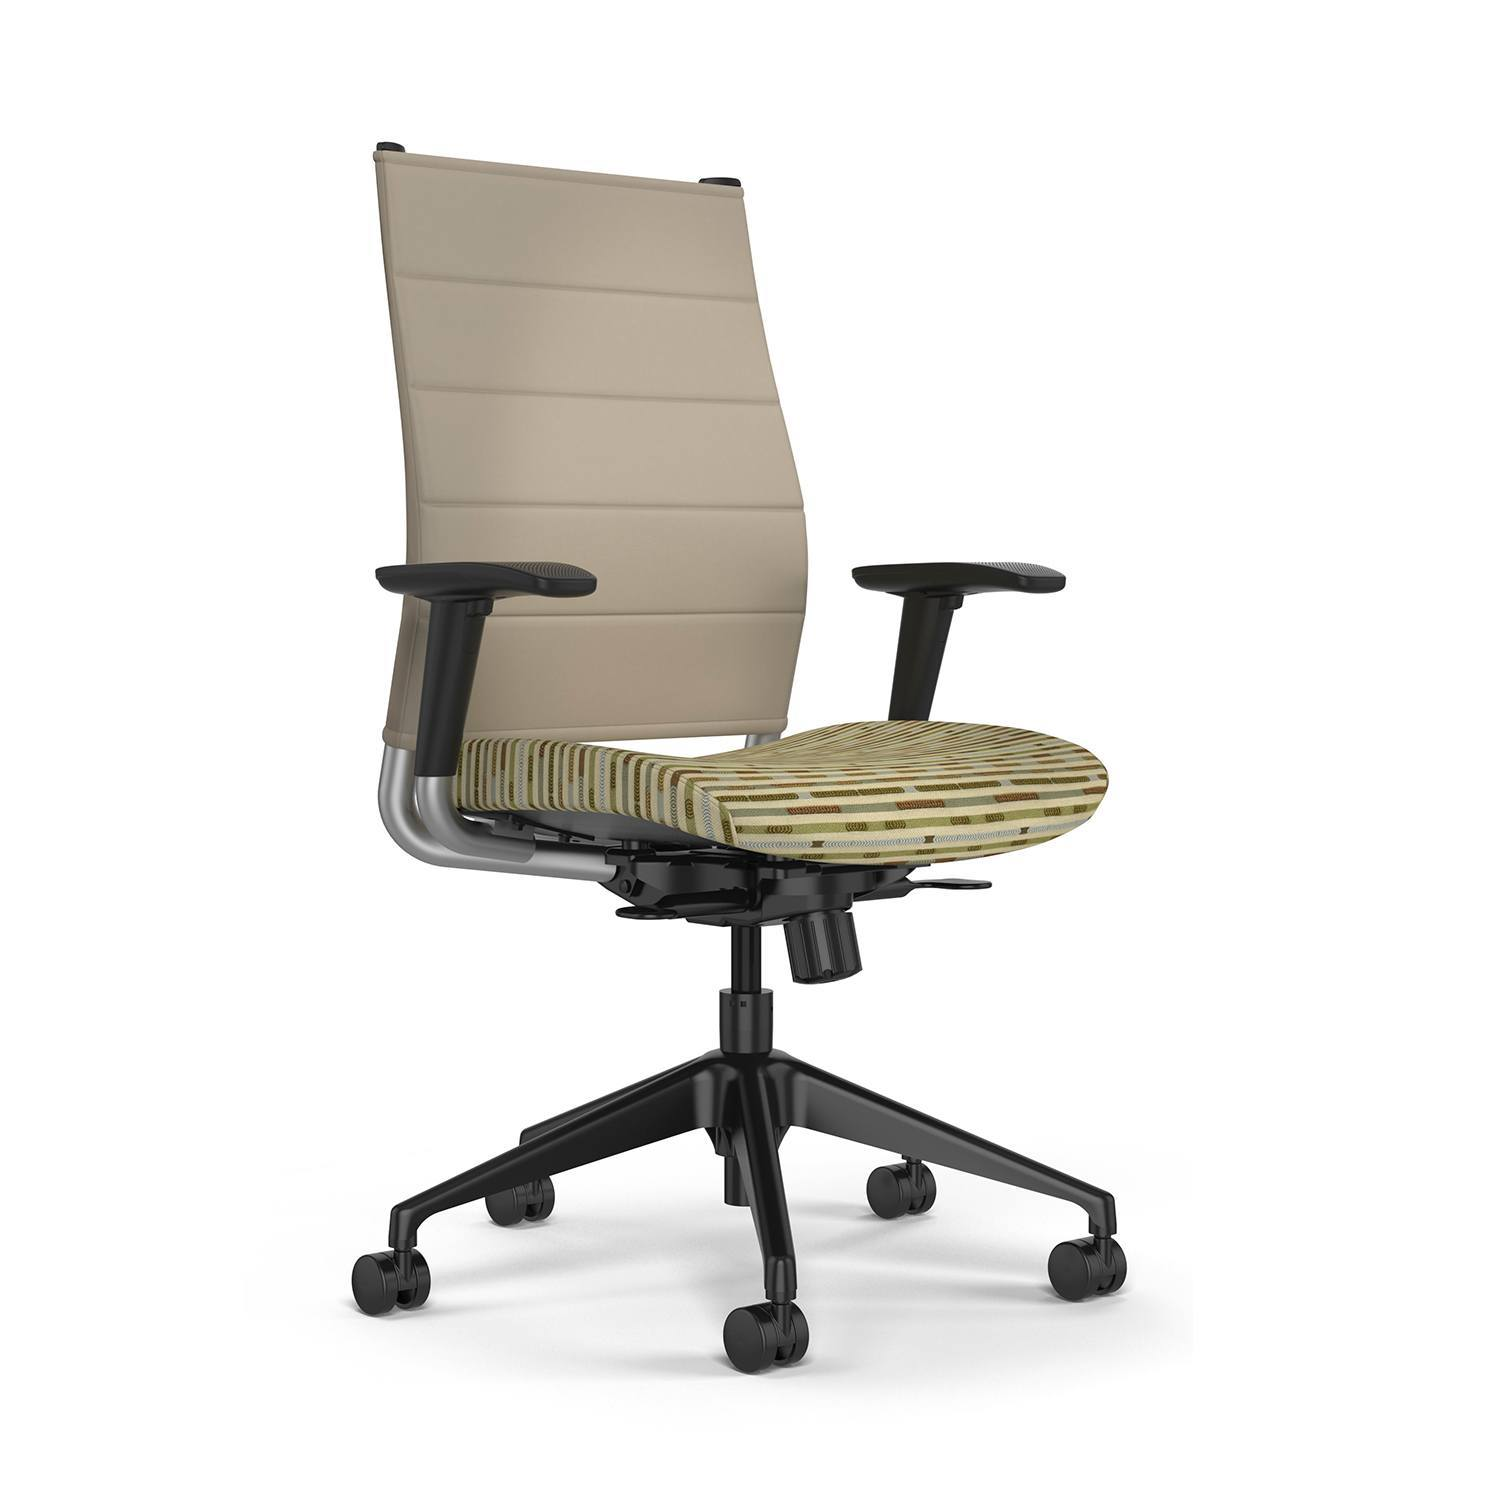 Sit It Wit Thintex Task Chair STIR